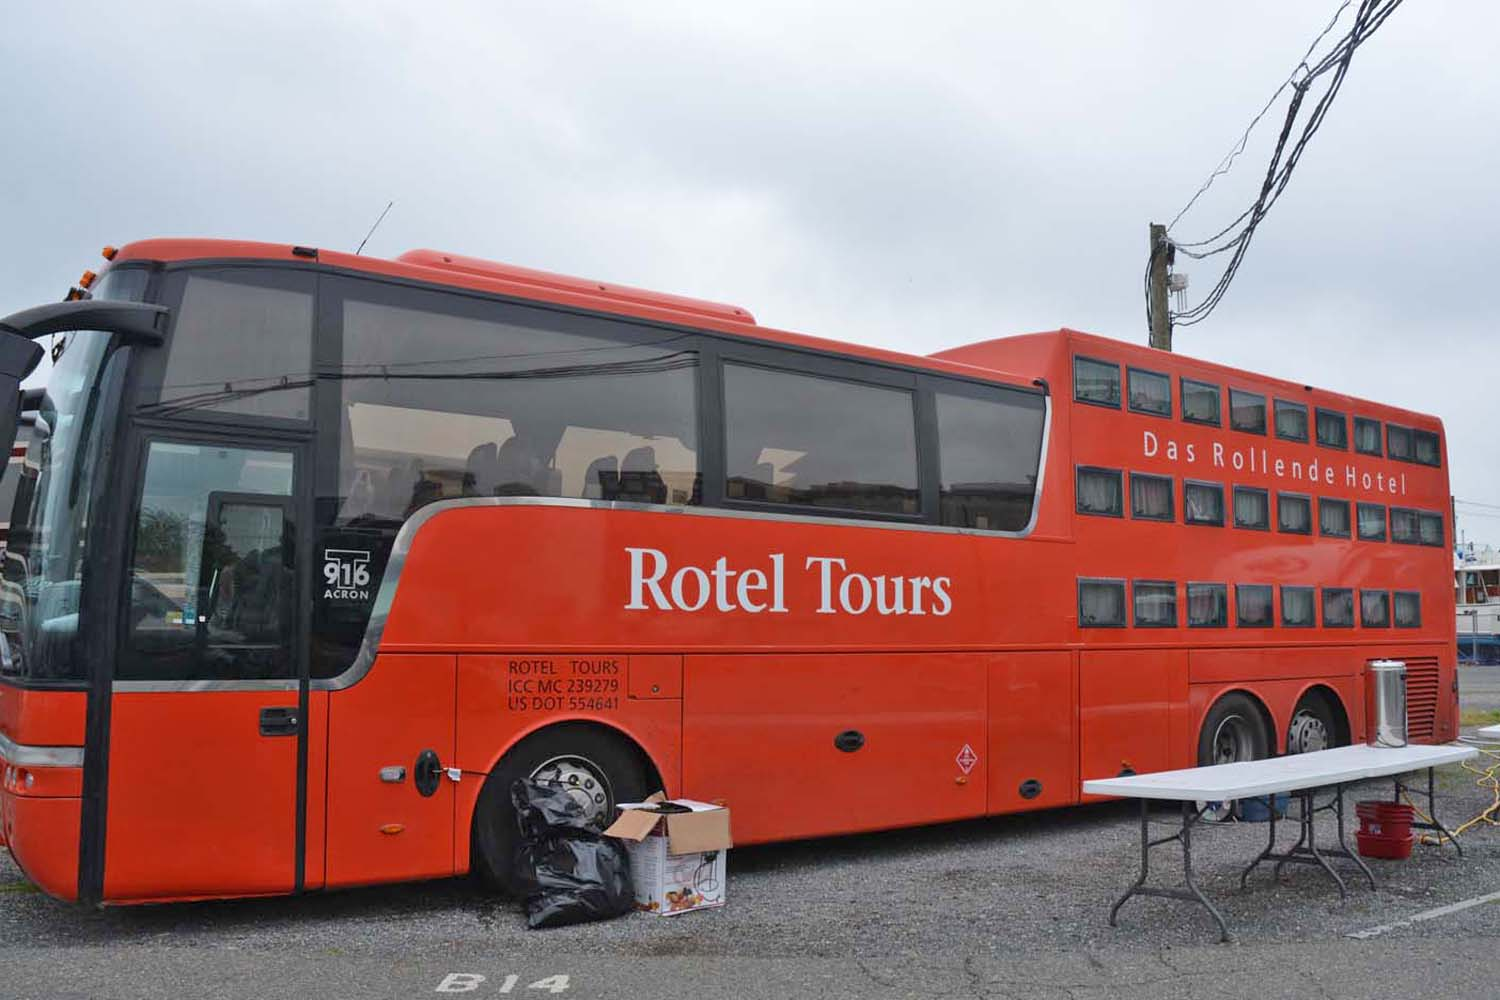 Rotel tour bus is an interesting concept for group travel